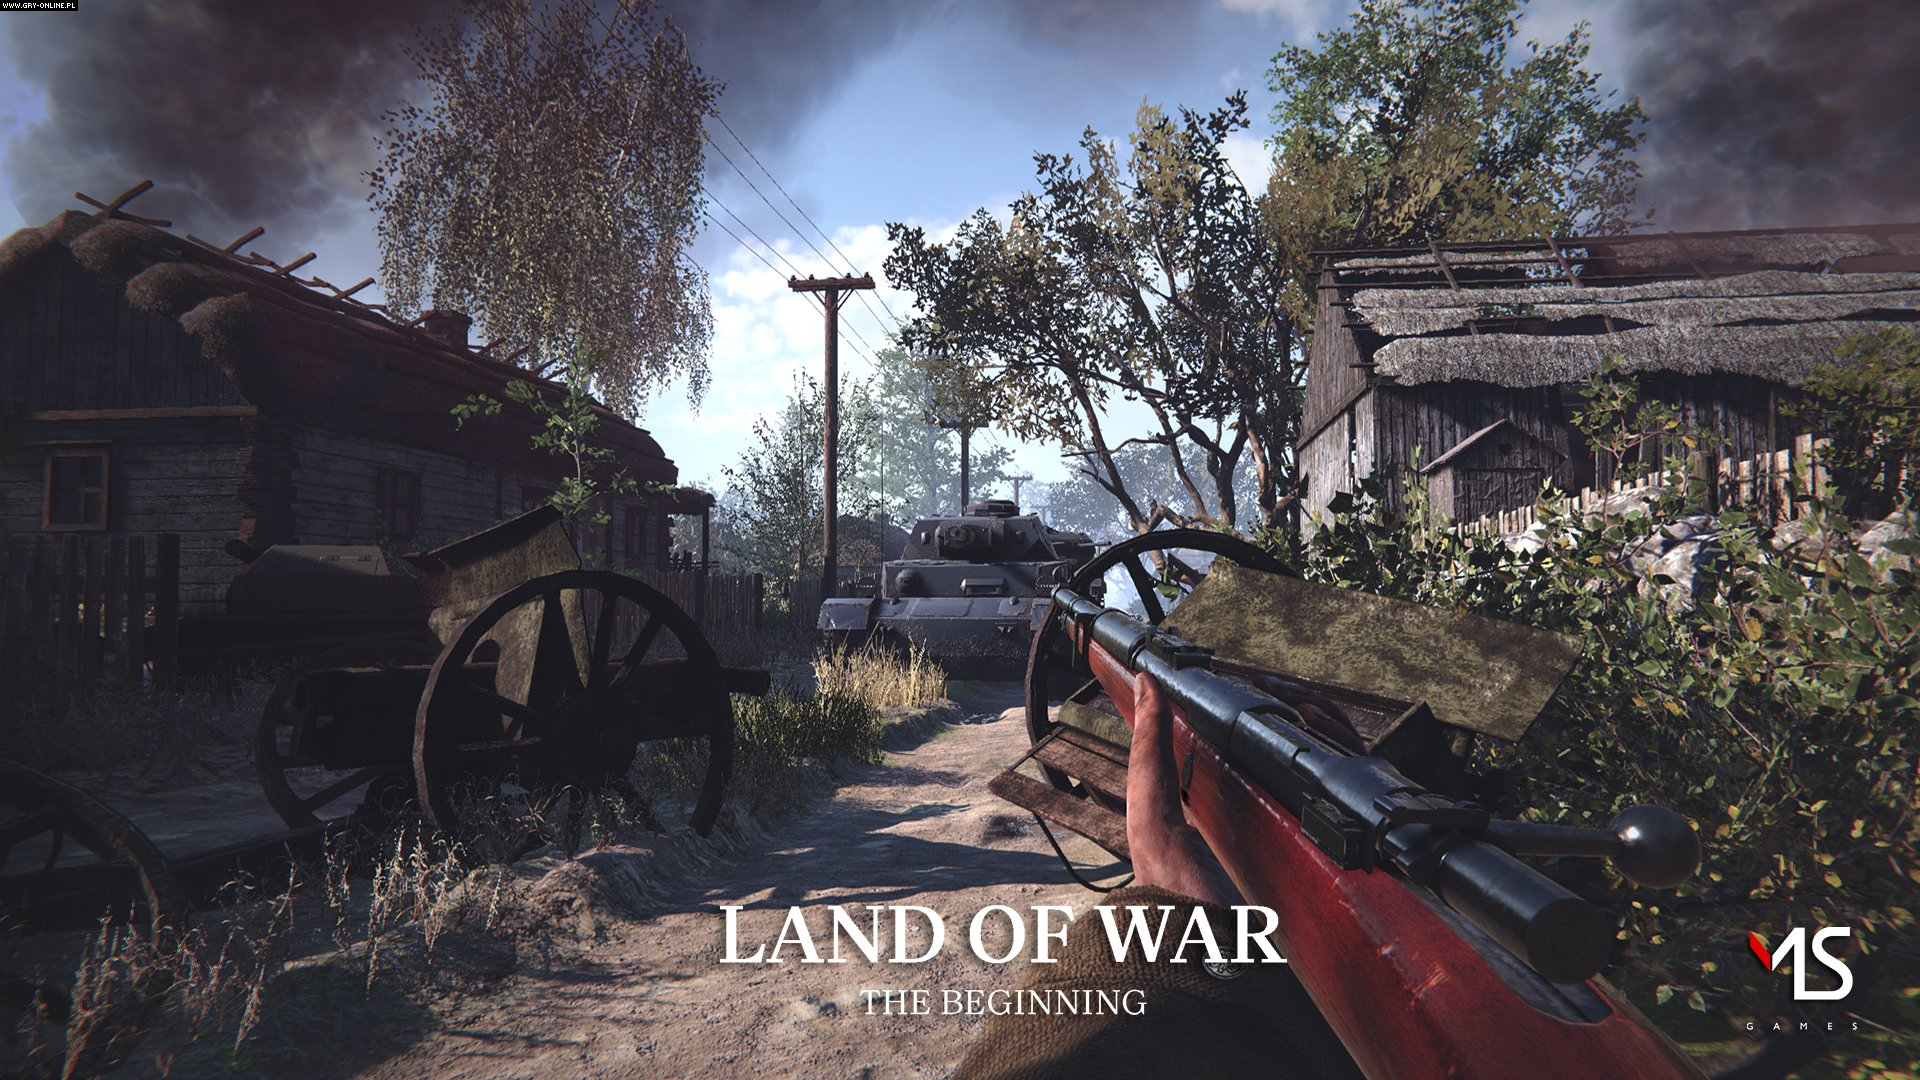 Land of War: The Beginning PC Gry Screen 6/7, MS Games